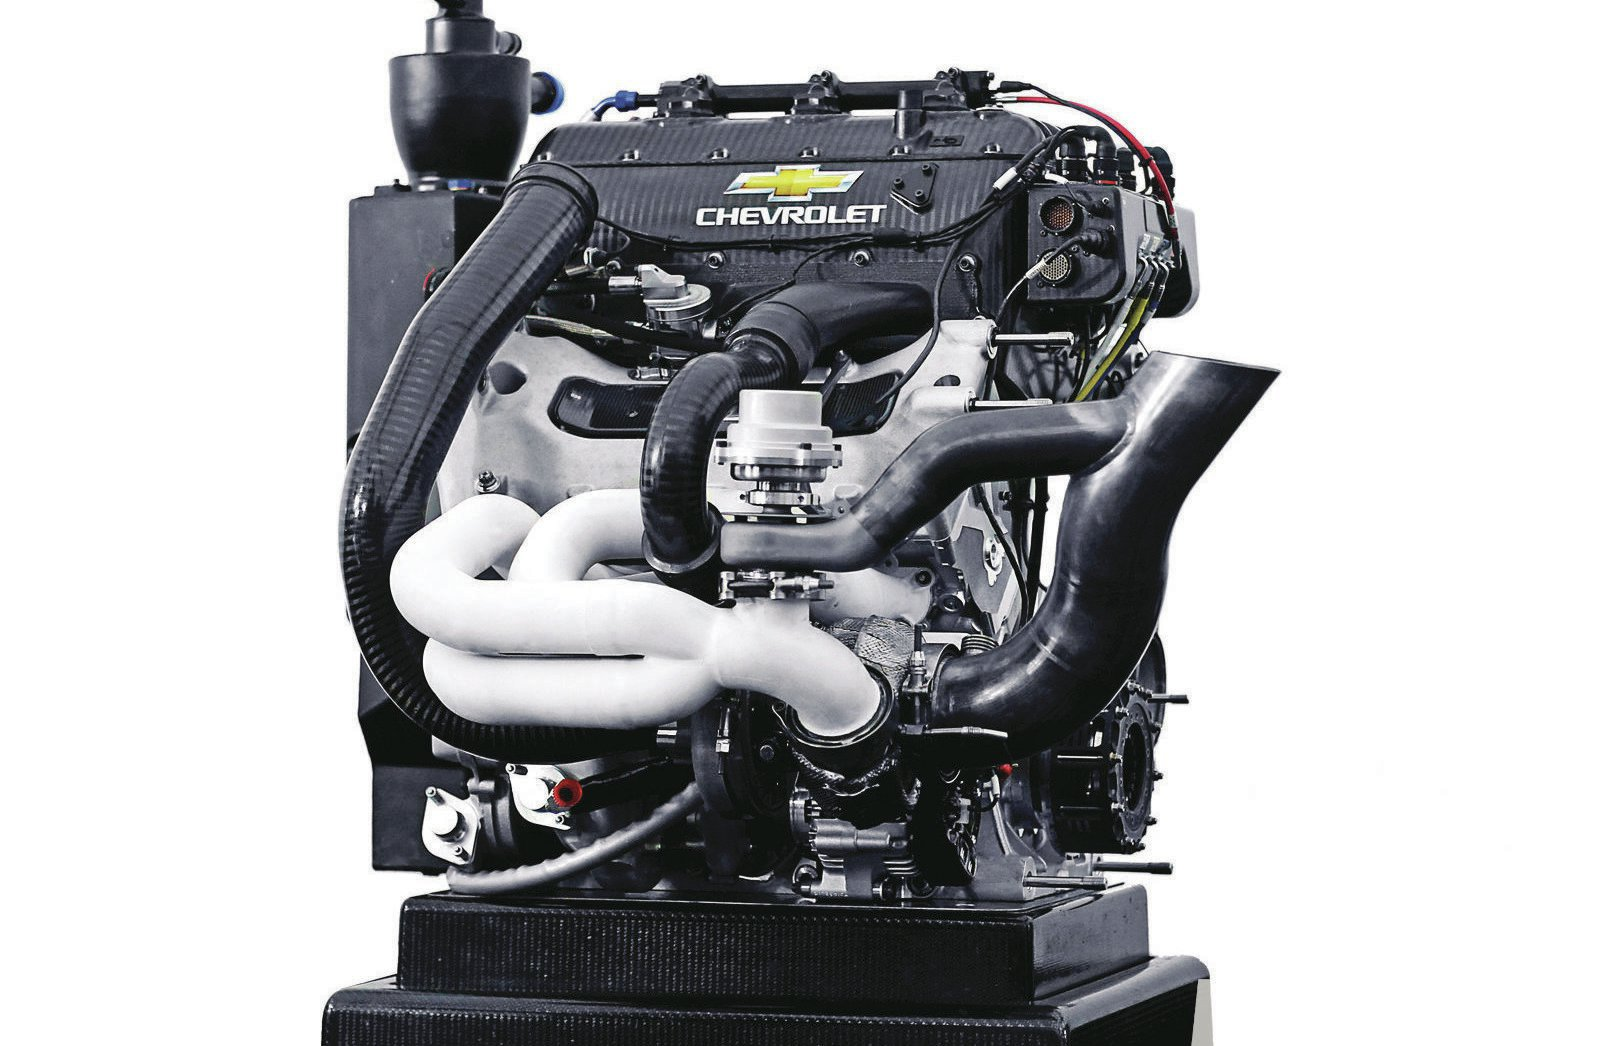 It's not often that an engine rewrites the rules of a race series, but when Chevrolet introduced its 2.2L twin-turbo V6 for the company's return to IndyCar, it took exactly one season for the rules committee to require a spec twin-turbo system to level the playing field for the far outclassed single-turbo Honda system. GM embedded top engineers with Ilmor Engineering (UK) to develop and manufacture race components and create the engine calibration. The cars are assembled and tested in the U.S. GM partnered with Hitachi to create the DI system, which we're told is based on production components.